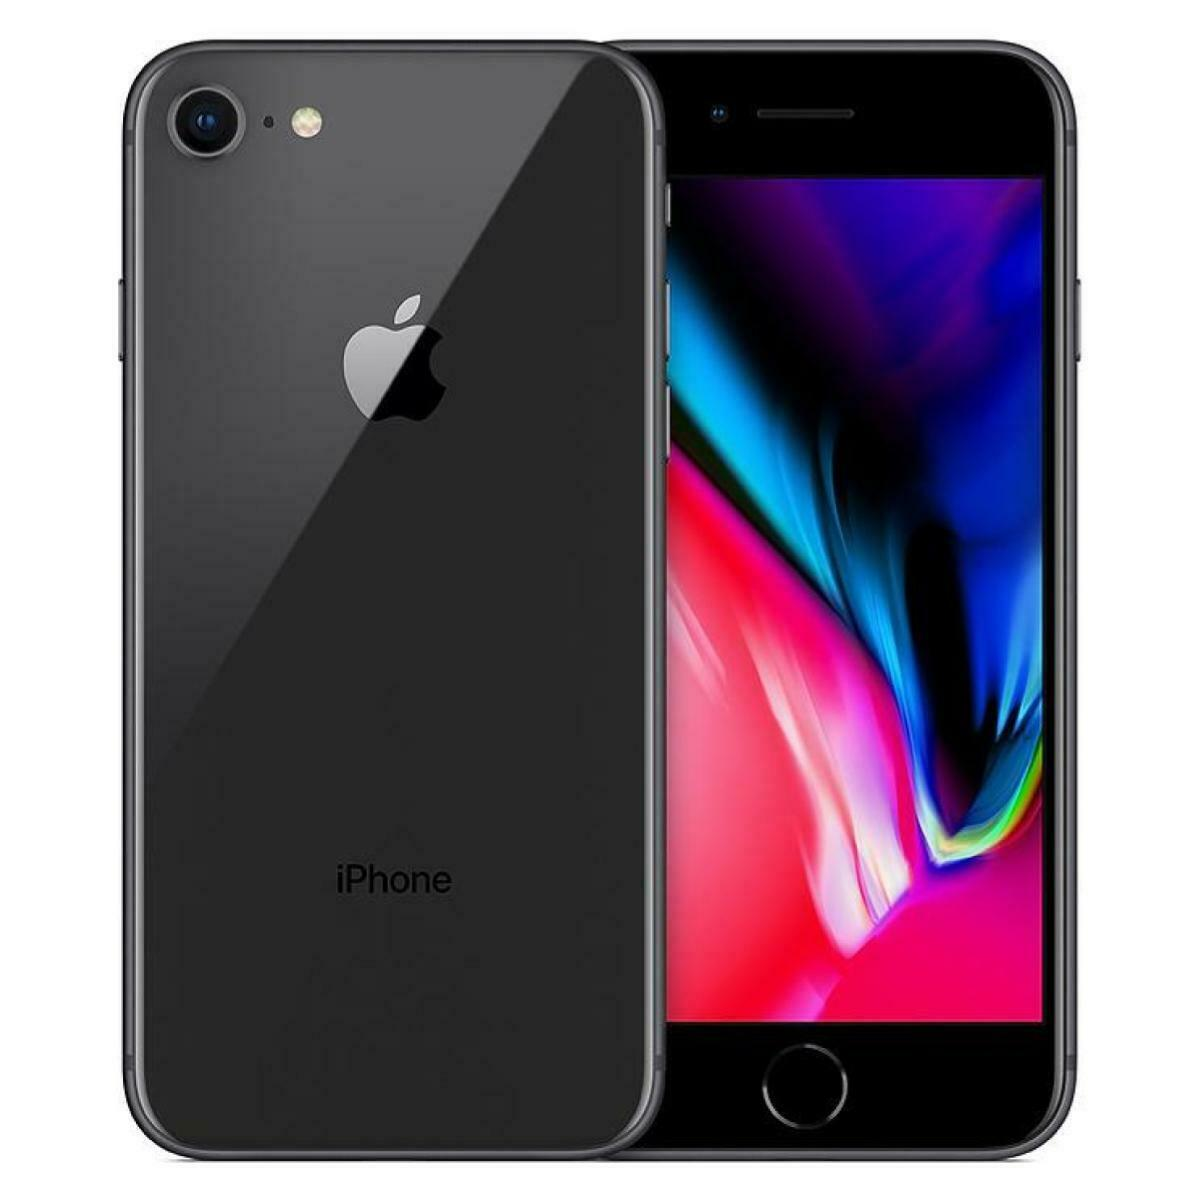 Apple iPhone 8 64GB GSM Unlocked AT&T T-Mobile Gray Smartphone